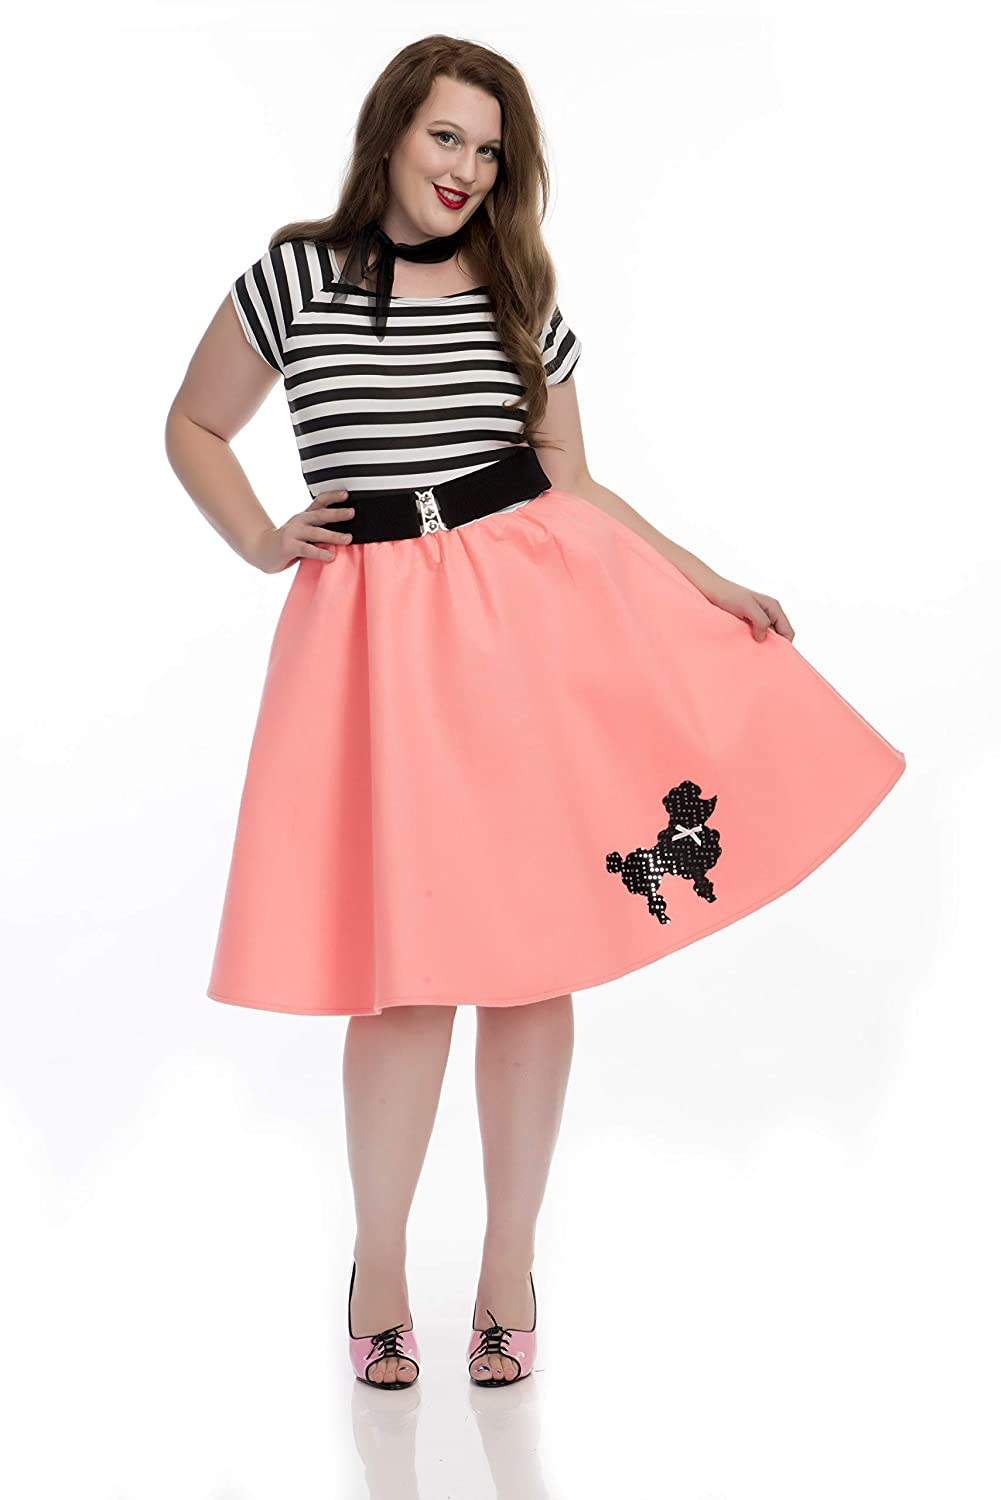 a2508837f34e6 Diy Plus Size Poodle Skirt | Saddha